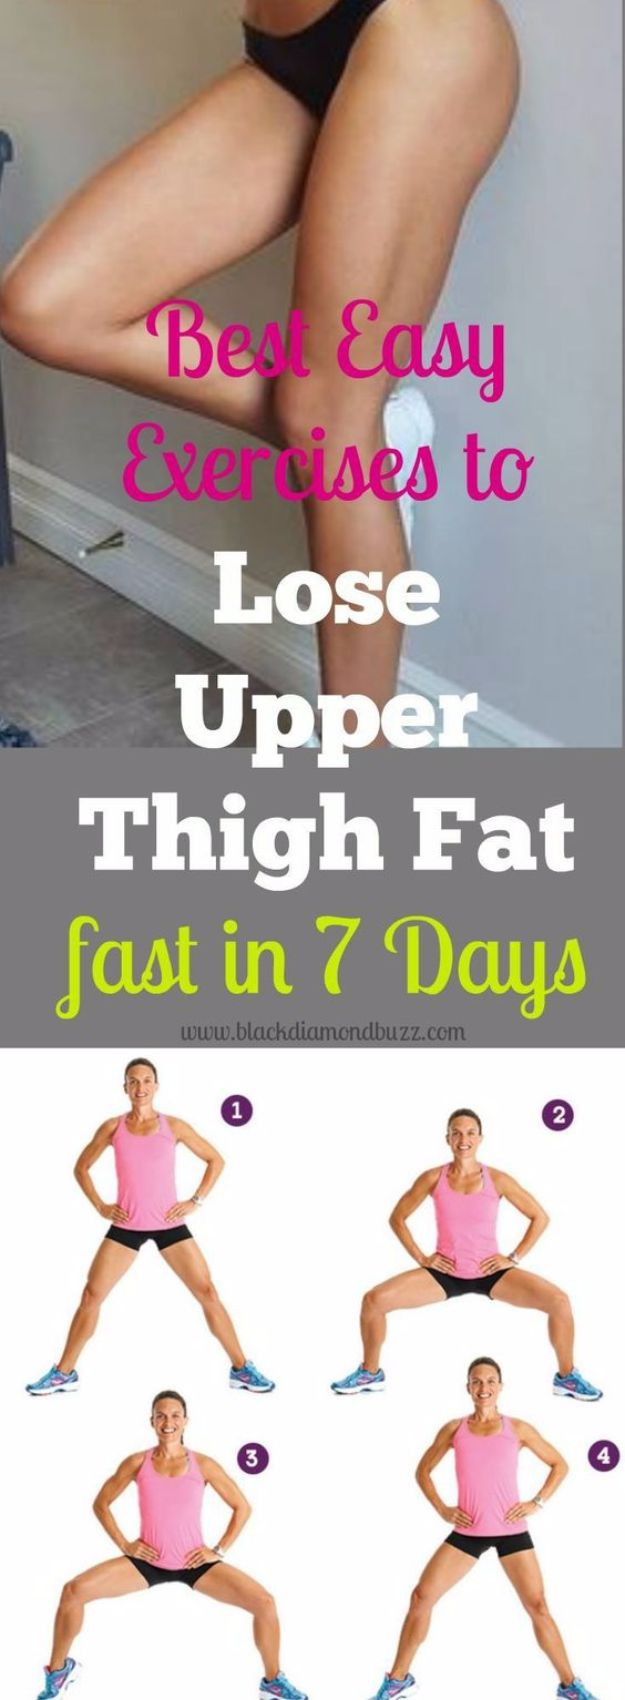 Best Exercises for 2018 - Lose Upper Thigh Fat Fast - Easy At Home Exercises - Quick Exercise Tutorials to Try at Lunch Break - Ways To Get In Shape - Butt, Abs, Arms, Legs, Thighs, Tummy http://diyjoy.com/best-at-home-exercises-2018